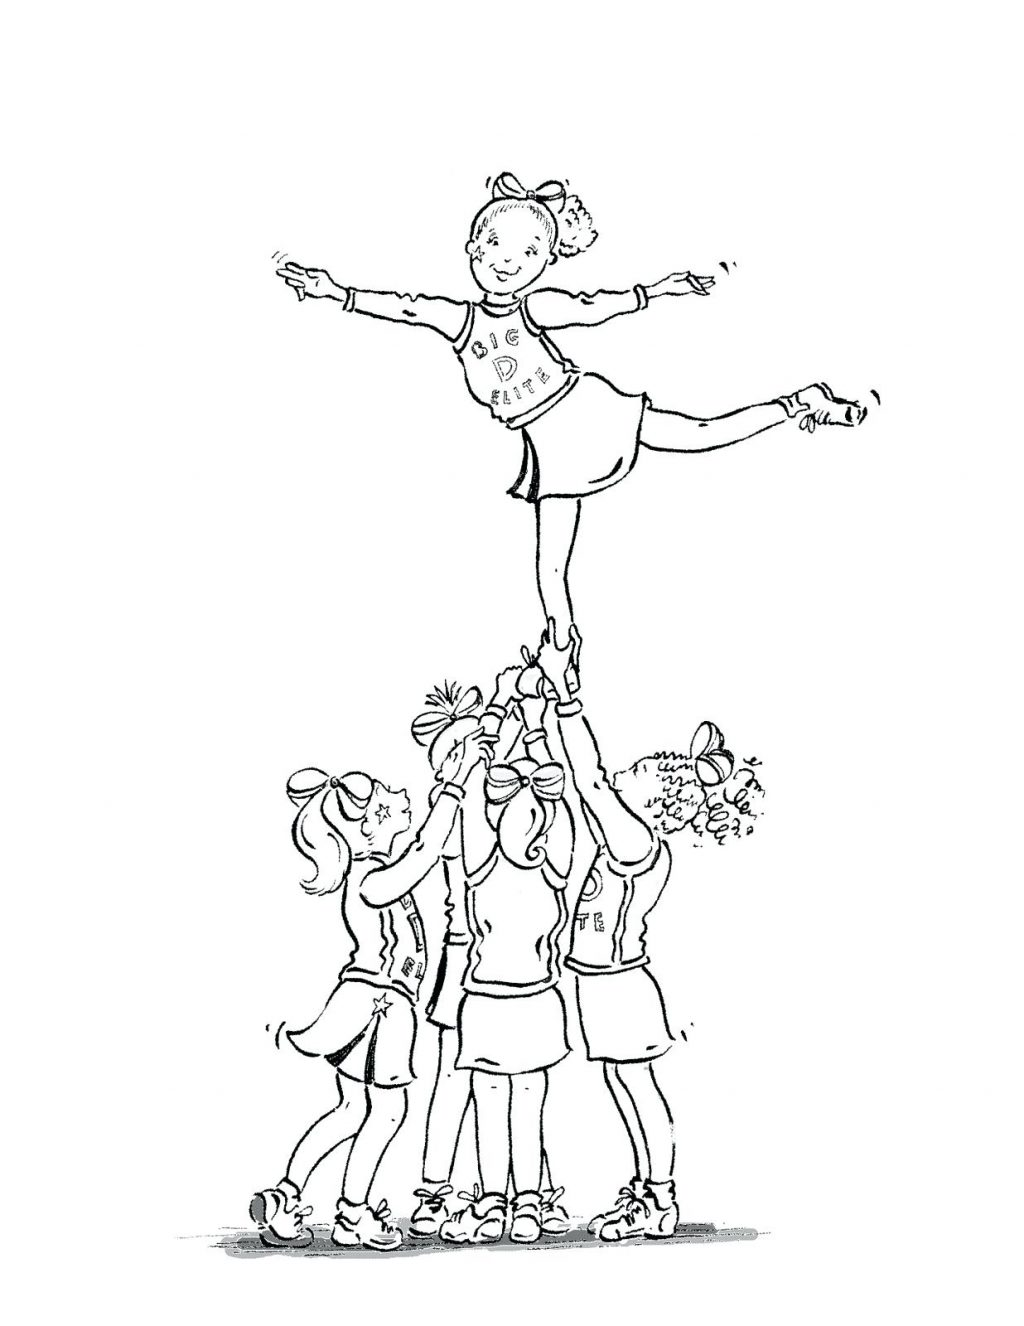 1024x1326 Coloring Page Cheer Coloring Pages Up Cheer Coloring Pages